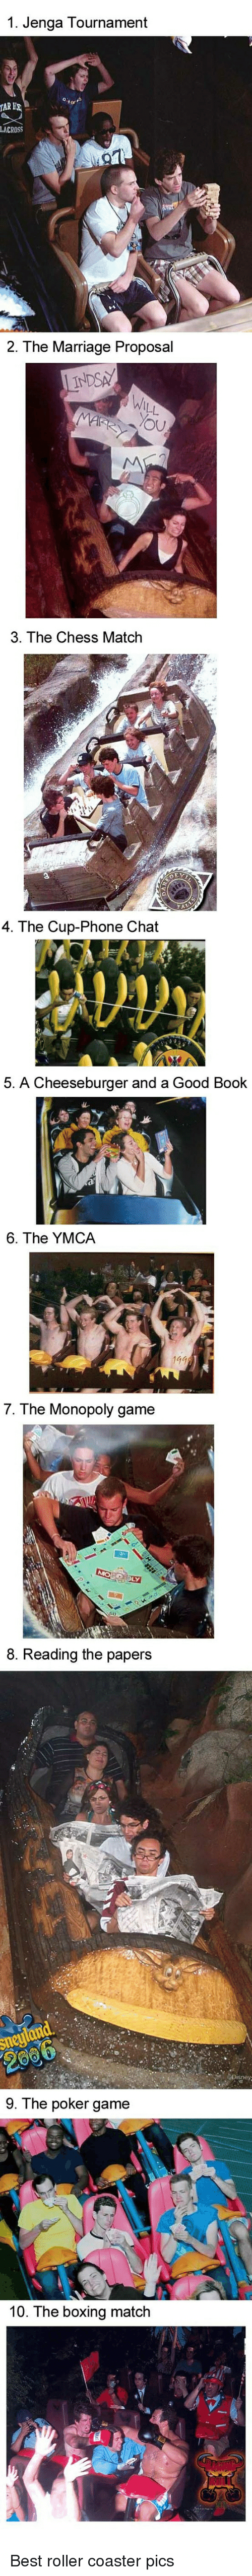 A Cheeseburger: 1. Jenga Tournament  2. The Marriage Proposal  3. The Chess Match  4. The Cup-Phone Chat  5. A Cheeseburger and a Good Book  6. The YMCA  7. The Monopoly game  8. Reading the papers  9. The poker game  10. The boxing match Best roller coaster pics